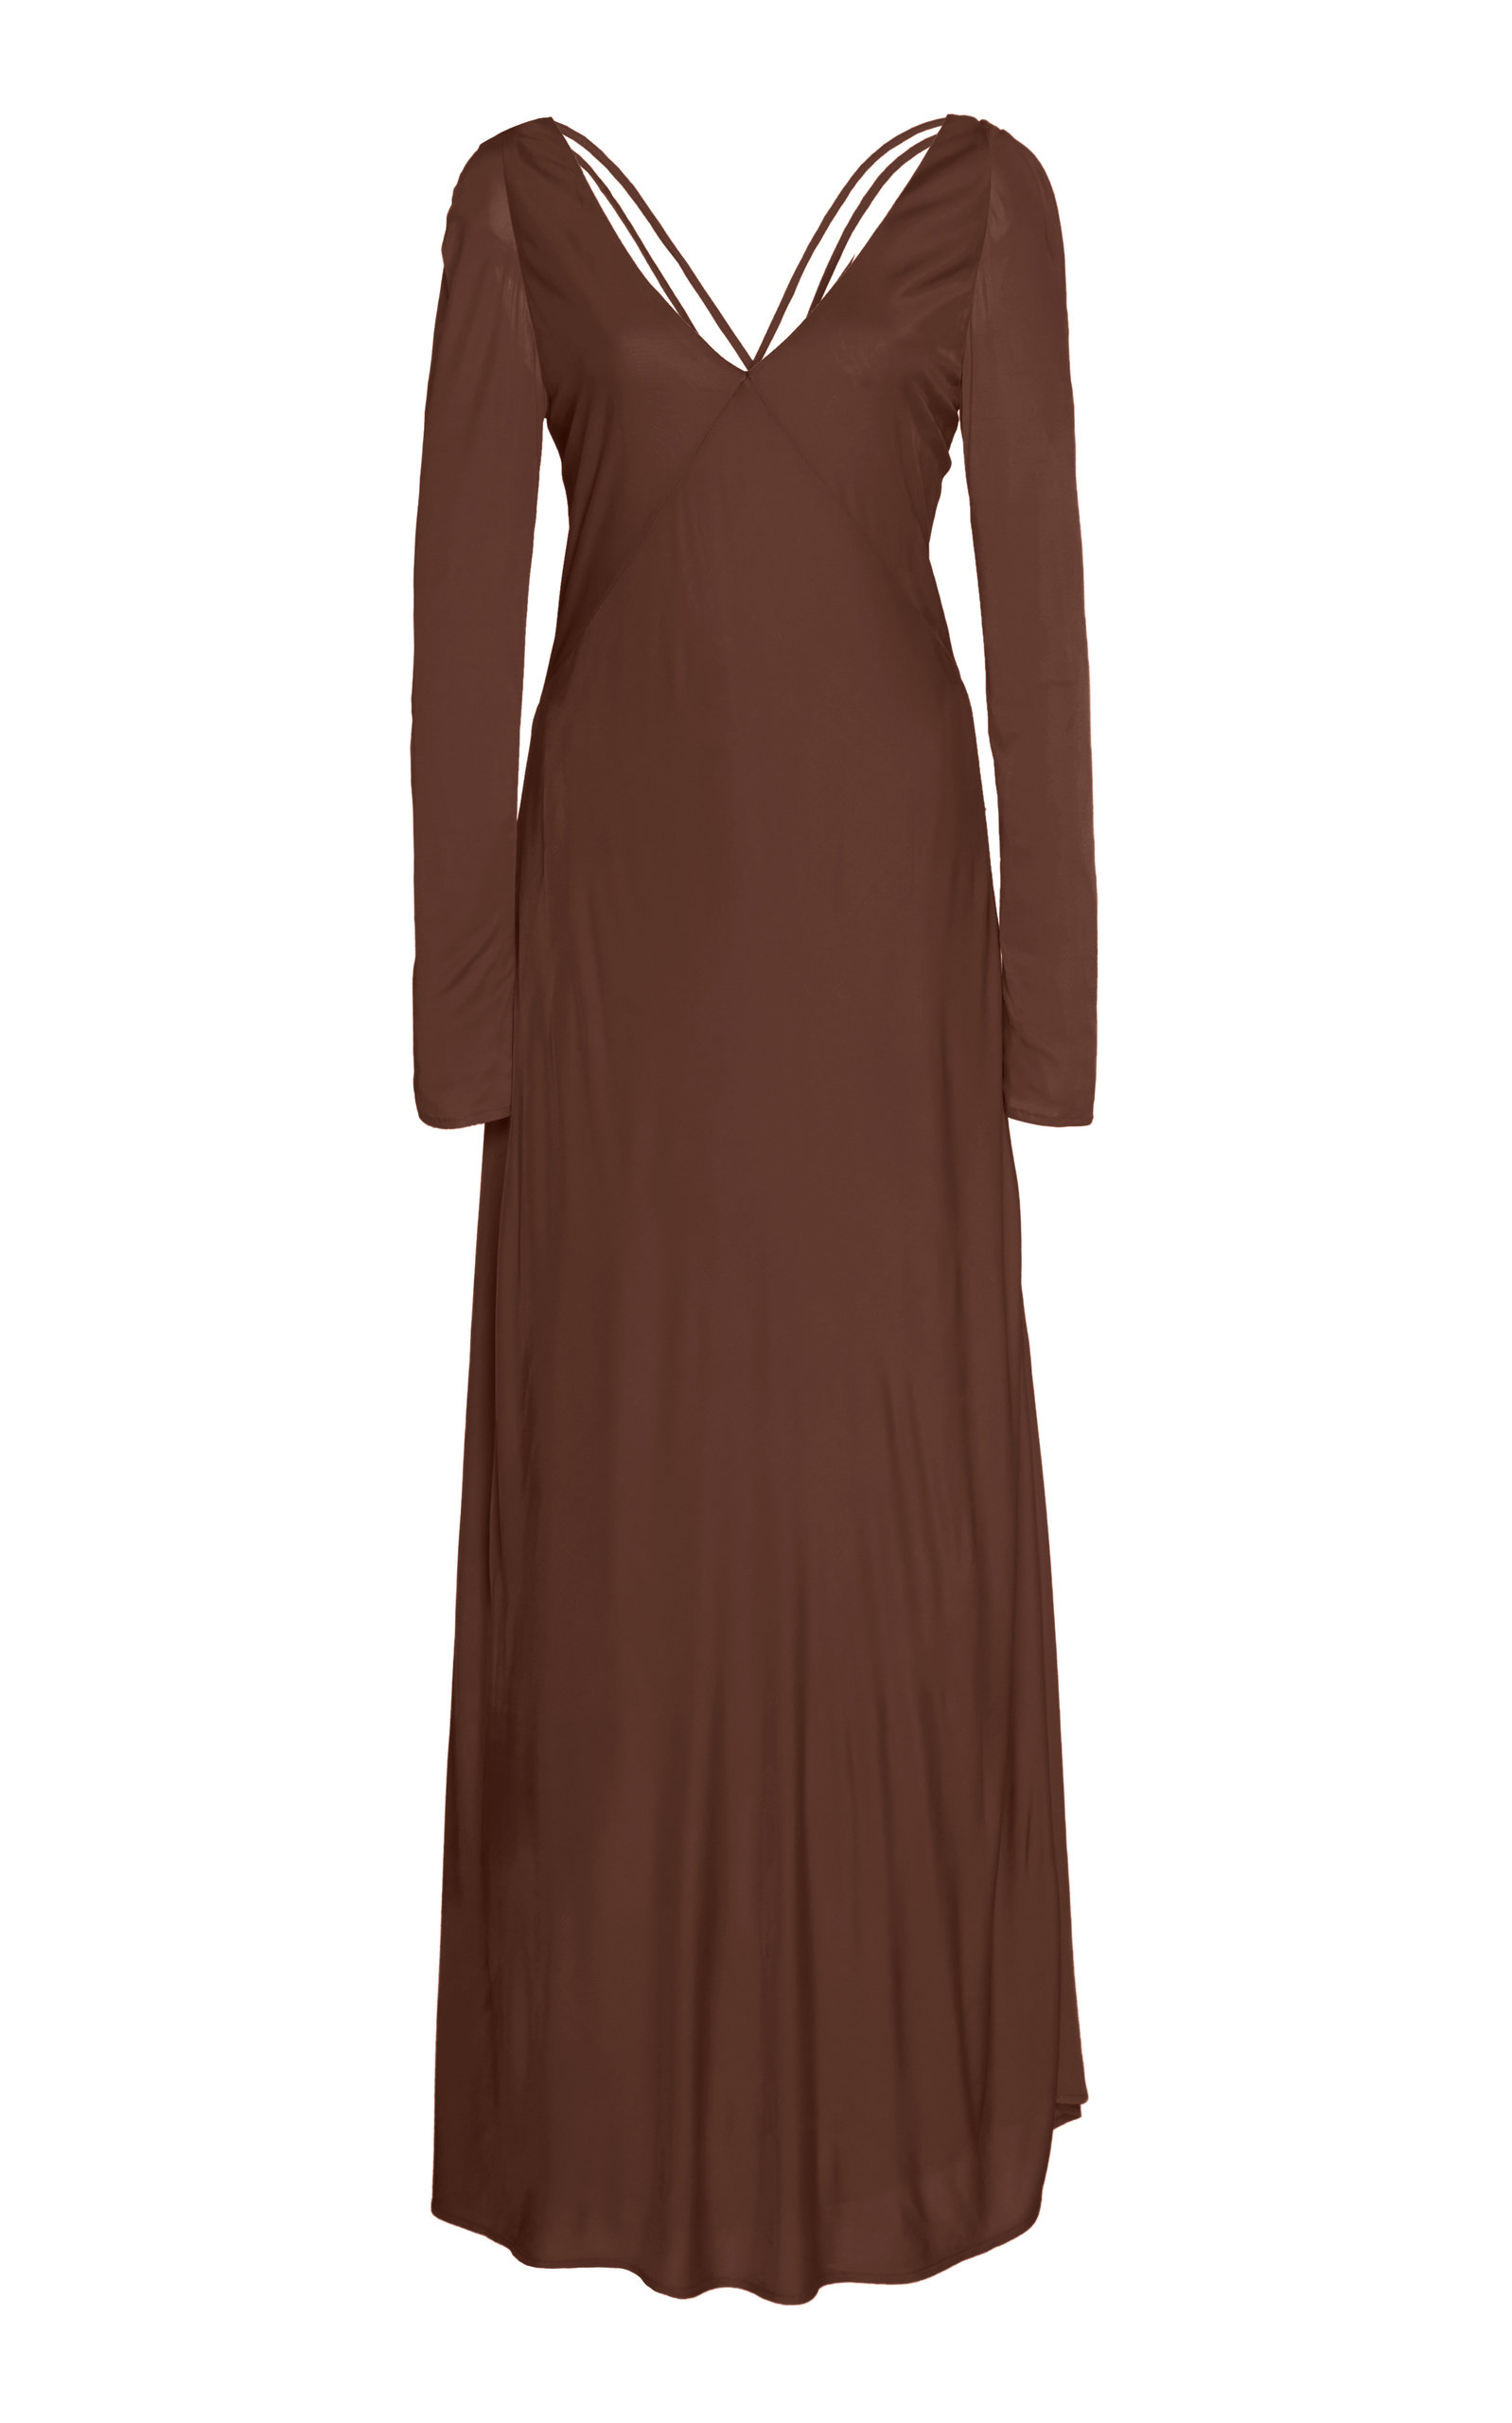 Buy Cult Gaia Becca Satin-Jersey Empire Dress online, shop Cult Gaia at the best price